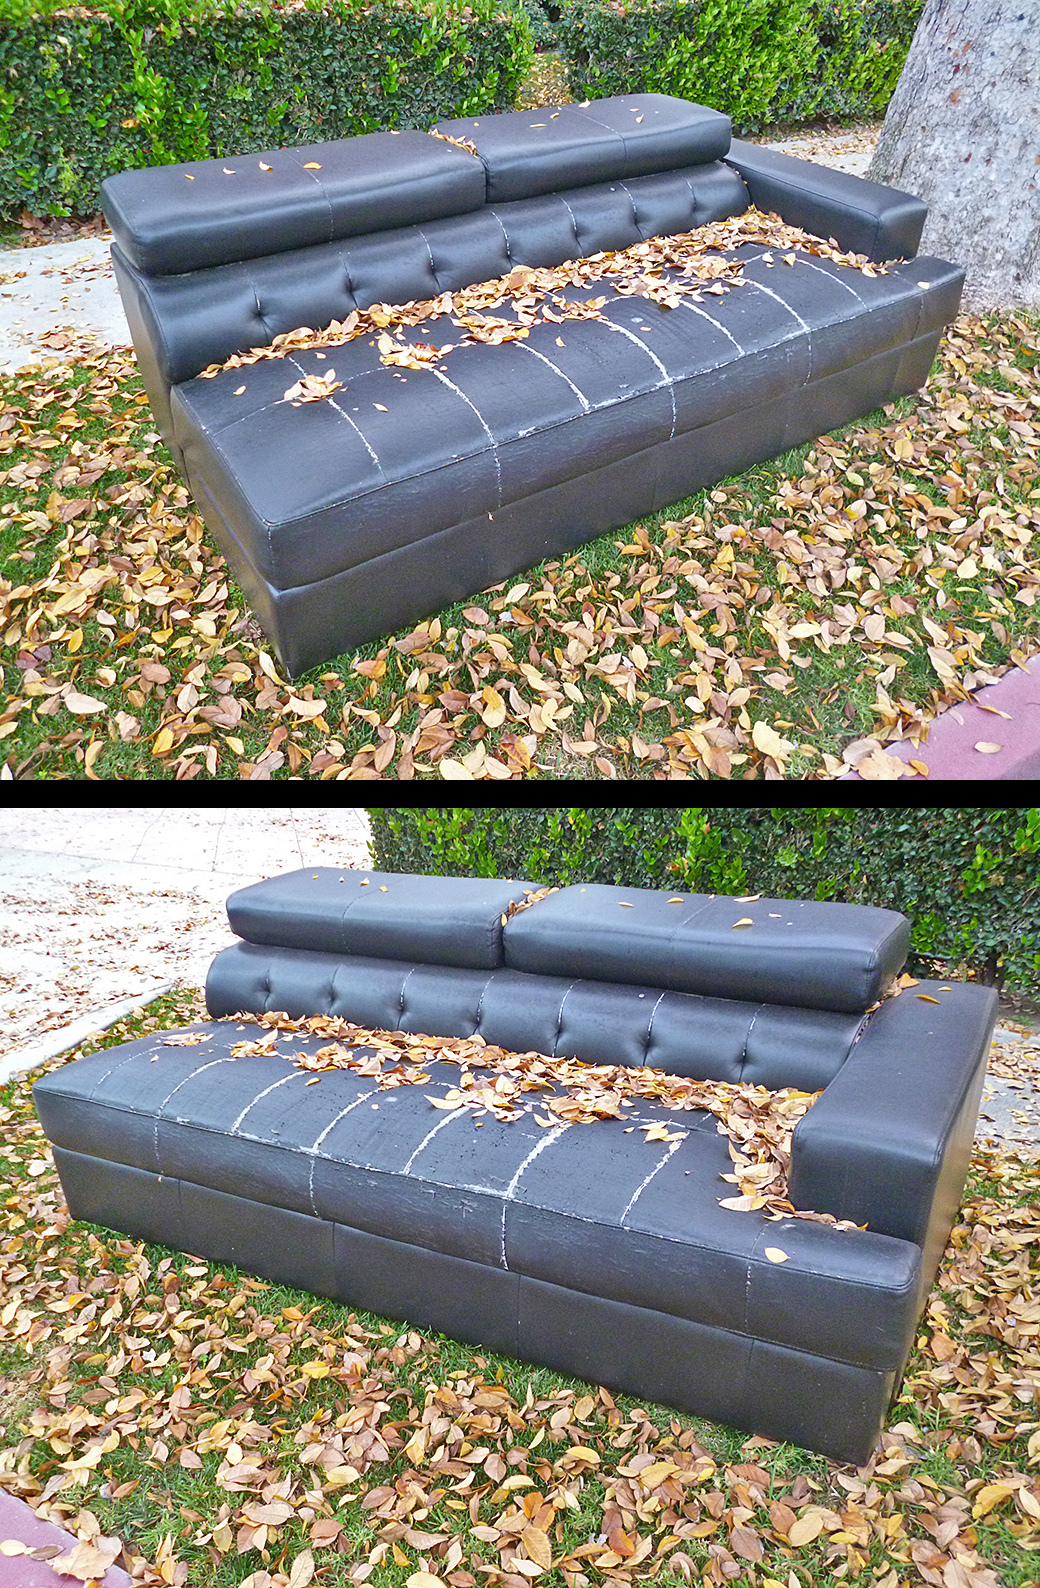 Sofa by the curb